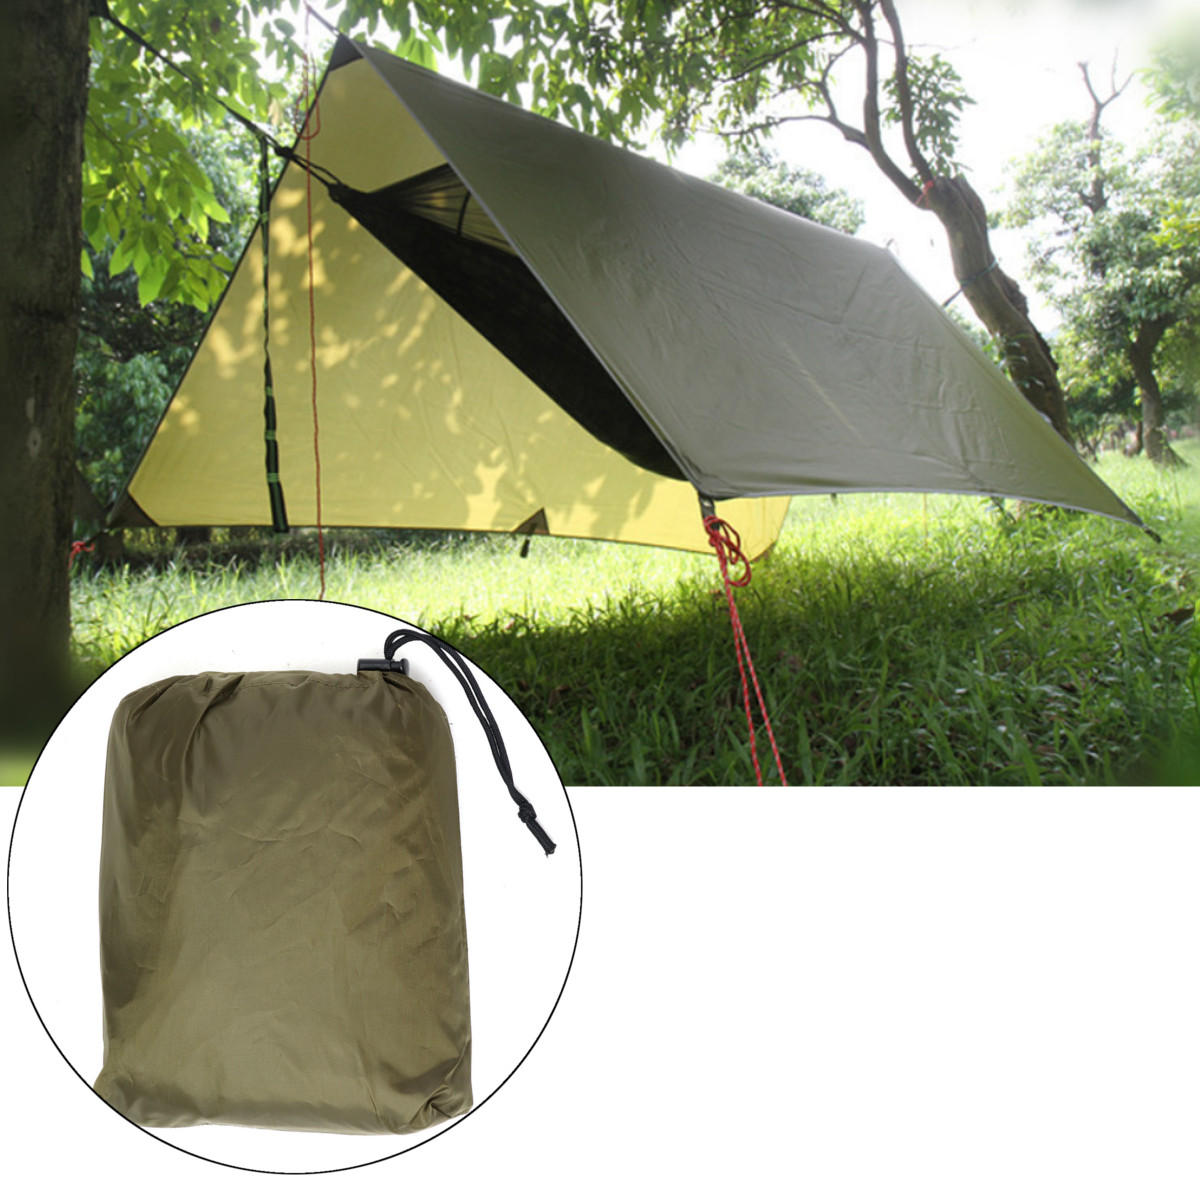 Outdoor C&ing Tent Sunshade Canopy Waterproof Anti-UV Beach Hammock Awning Shelter Tarp COD  sc 1 st  Banggood & outdoor camping tent sunshade canopy waterproof anti-uv beach ...